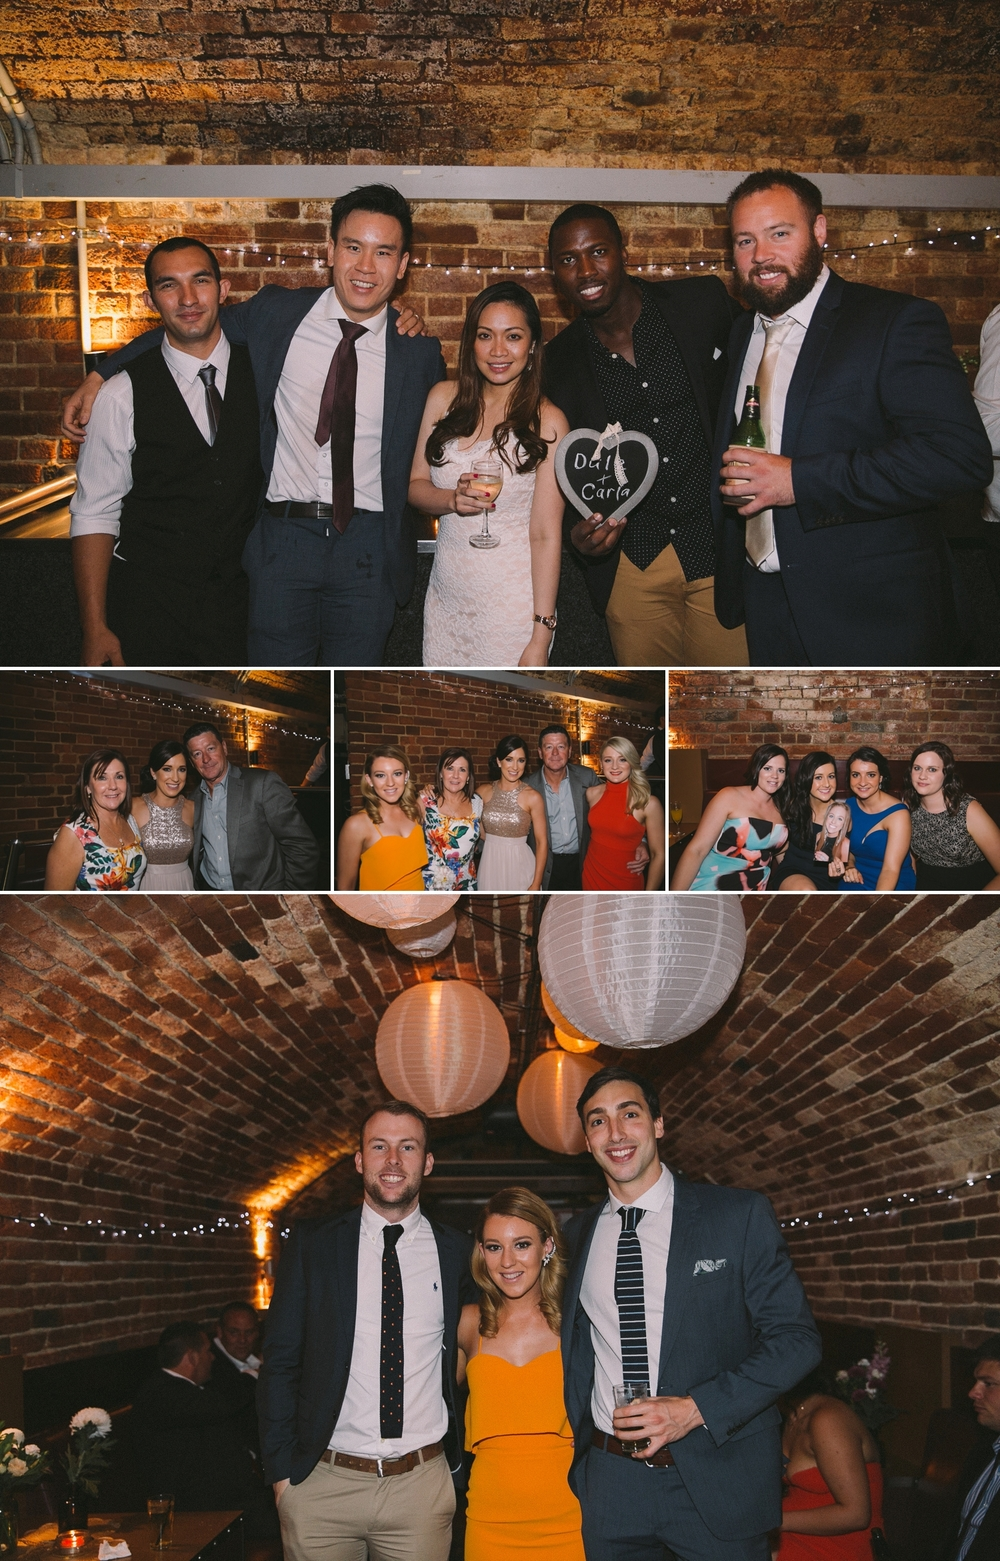 carla-dale-adelaide-wedding-photographer-003